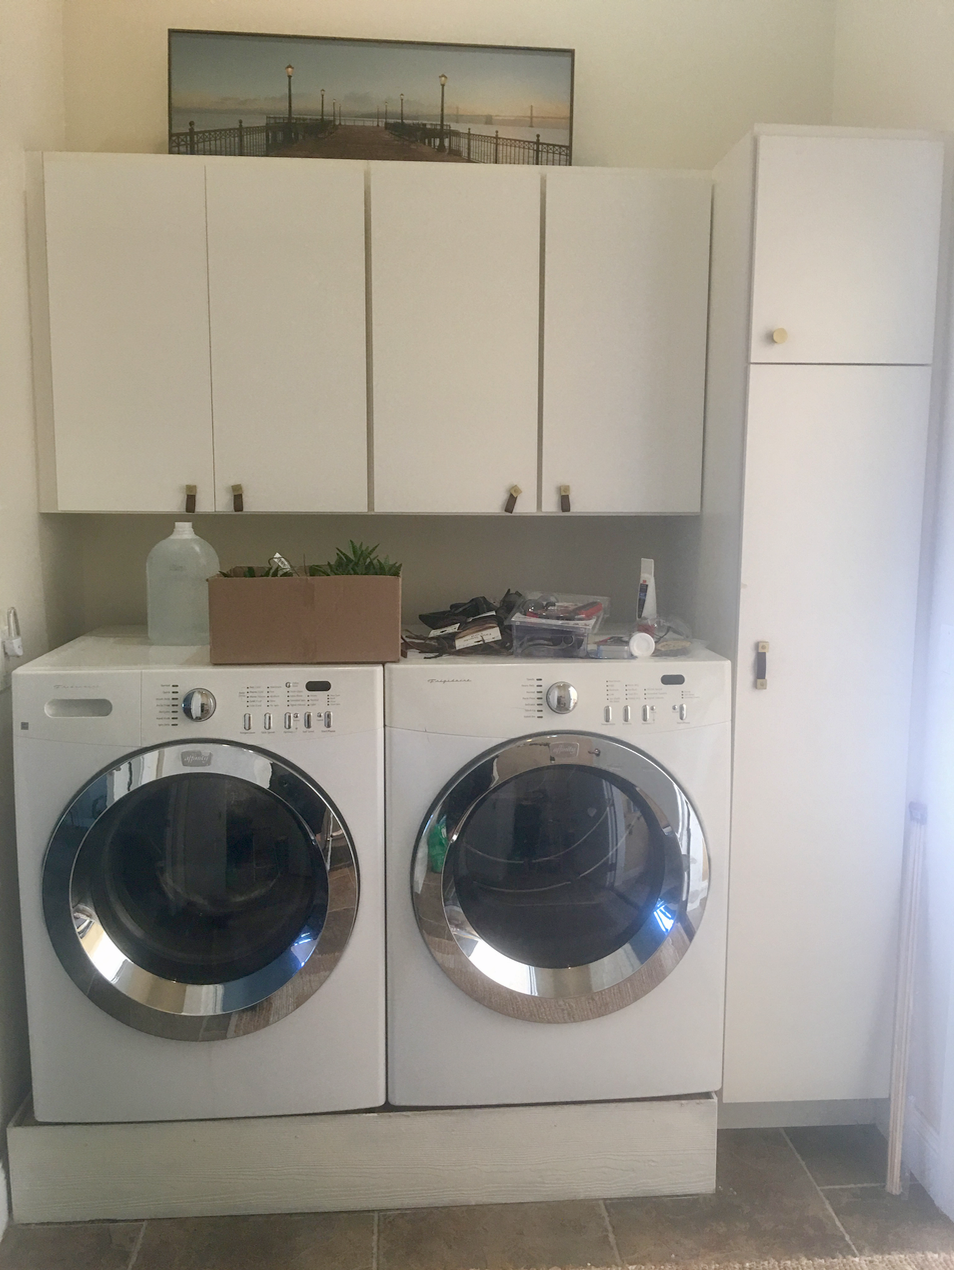 View of the washer/dryer